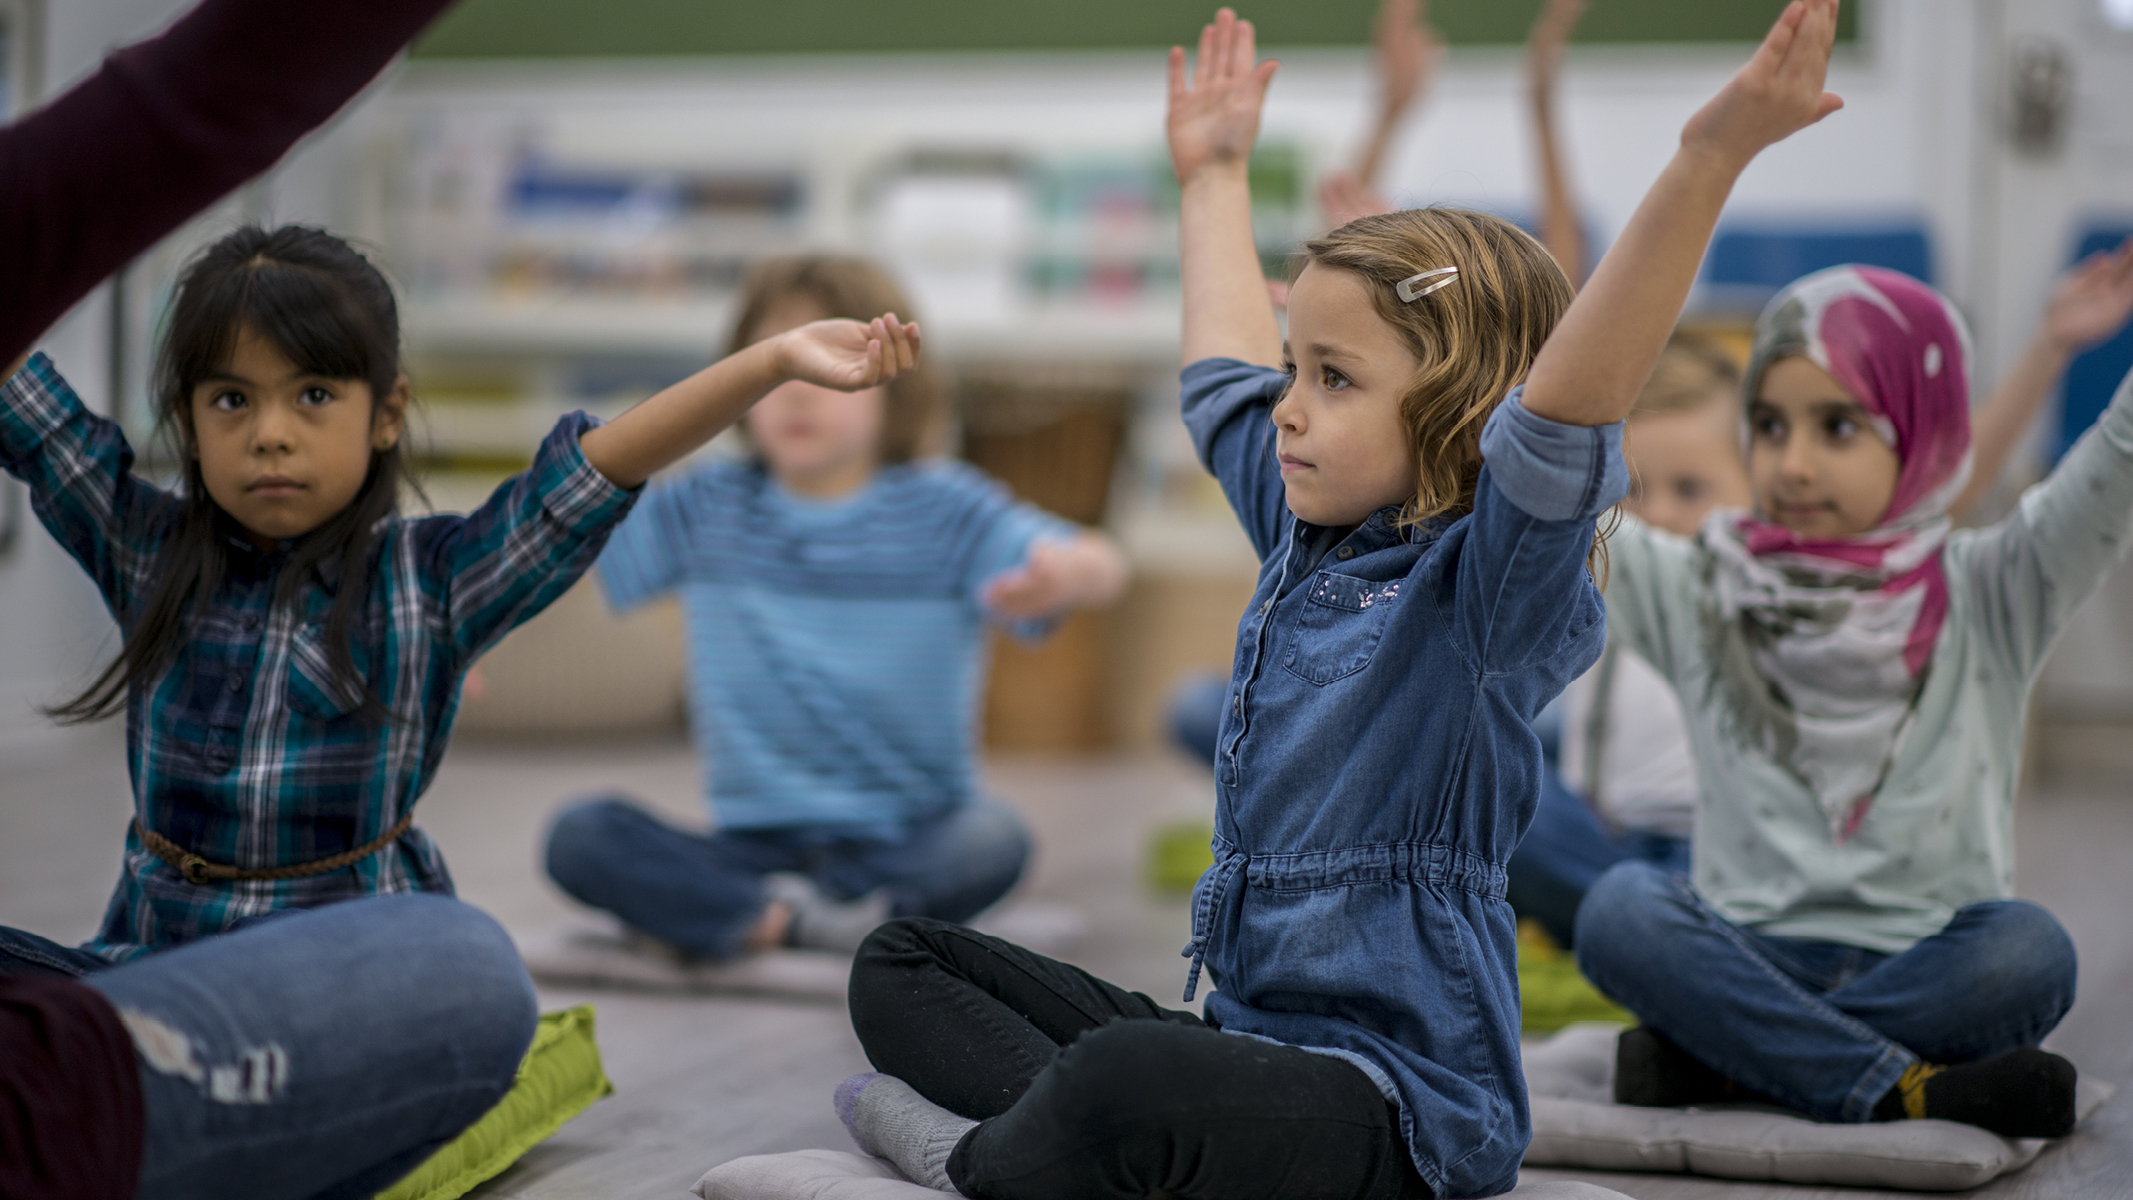 Kids stretching in classroom-Sanford fit